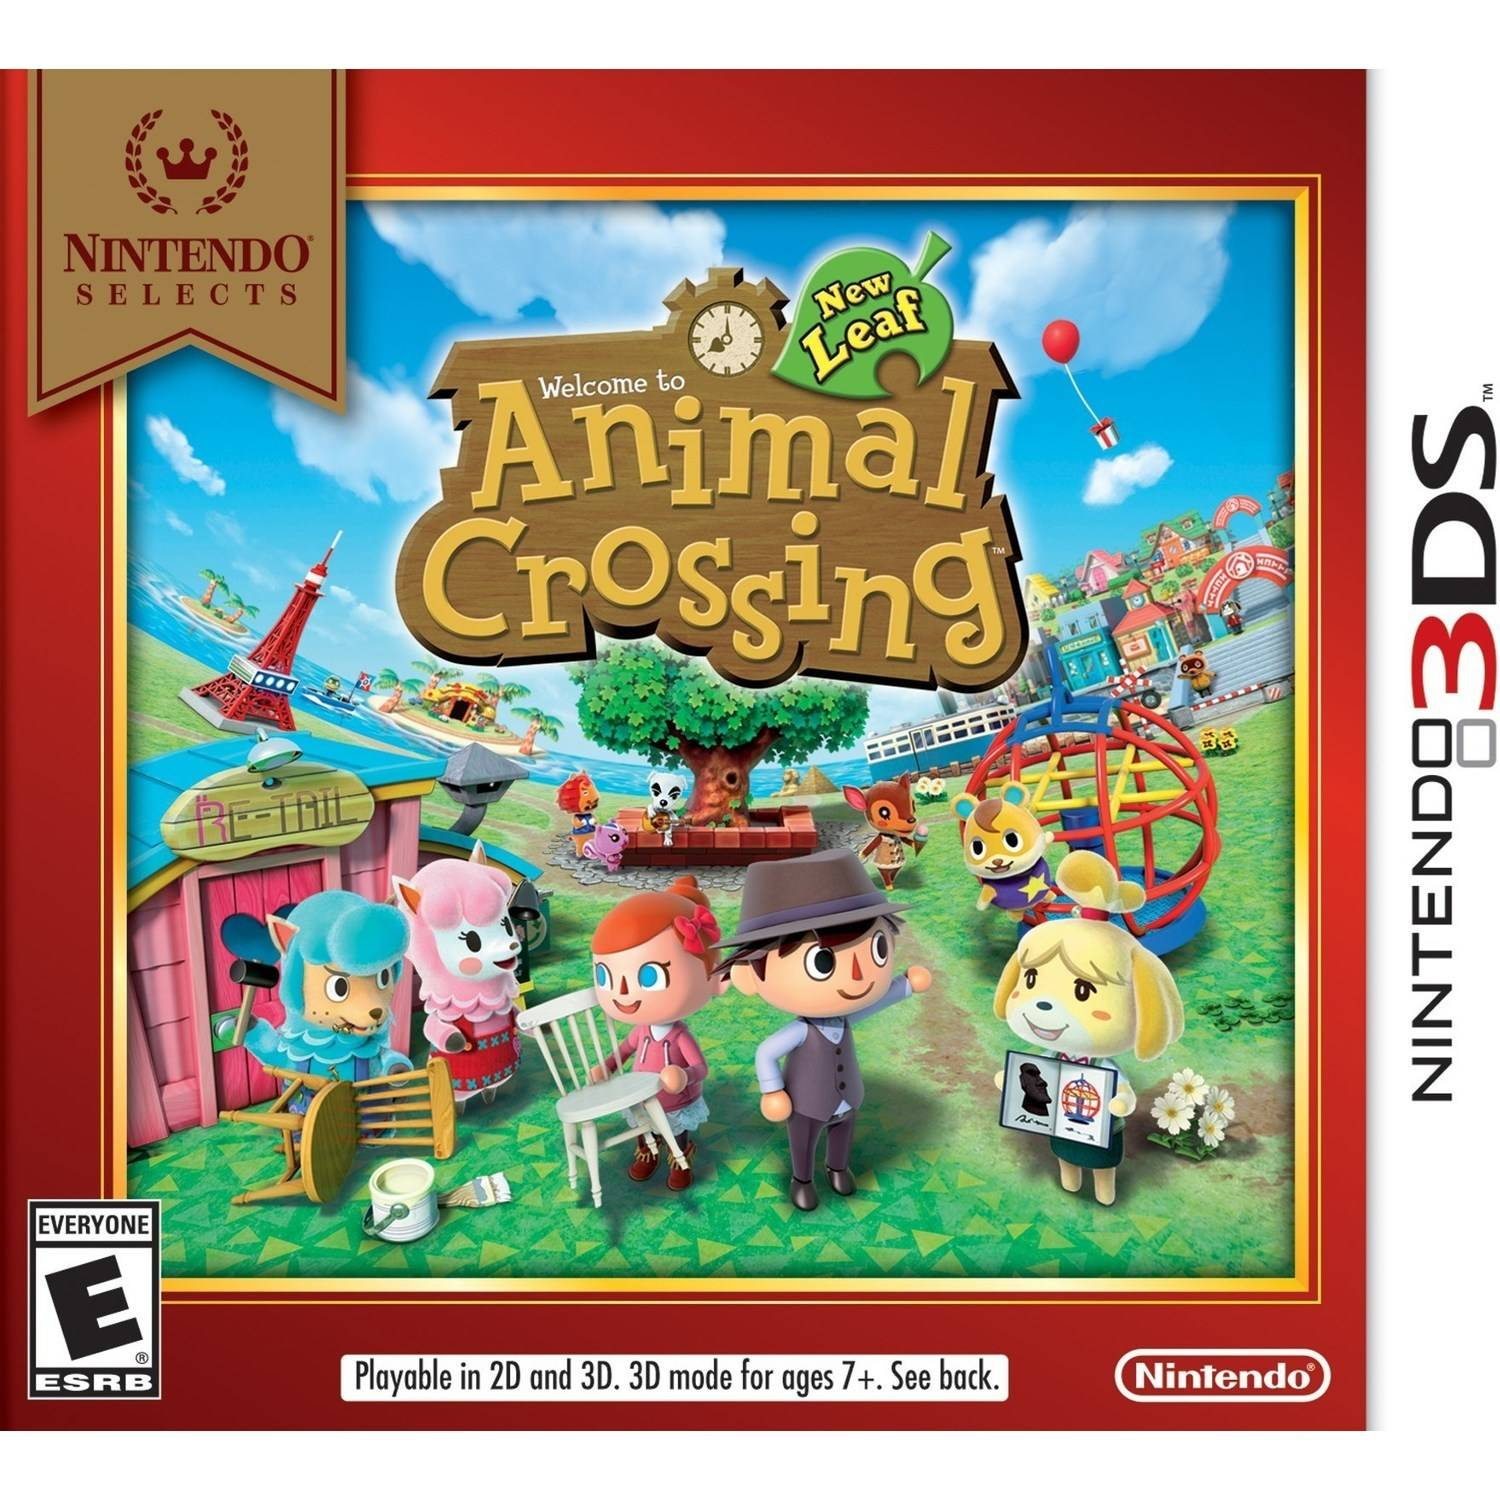 Image of: Animal Crossing New Leaf Animal Crossing New Leaf Nintendo Selects nintendo 3ds Walmartcom Walmart Animal Crossing New Leaf Nintendo Selects nintendo 3ds